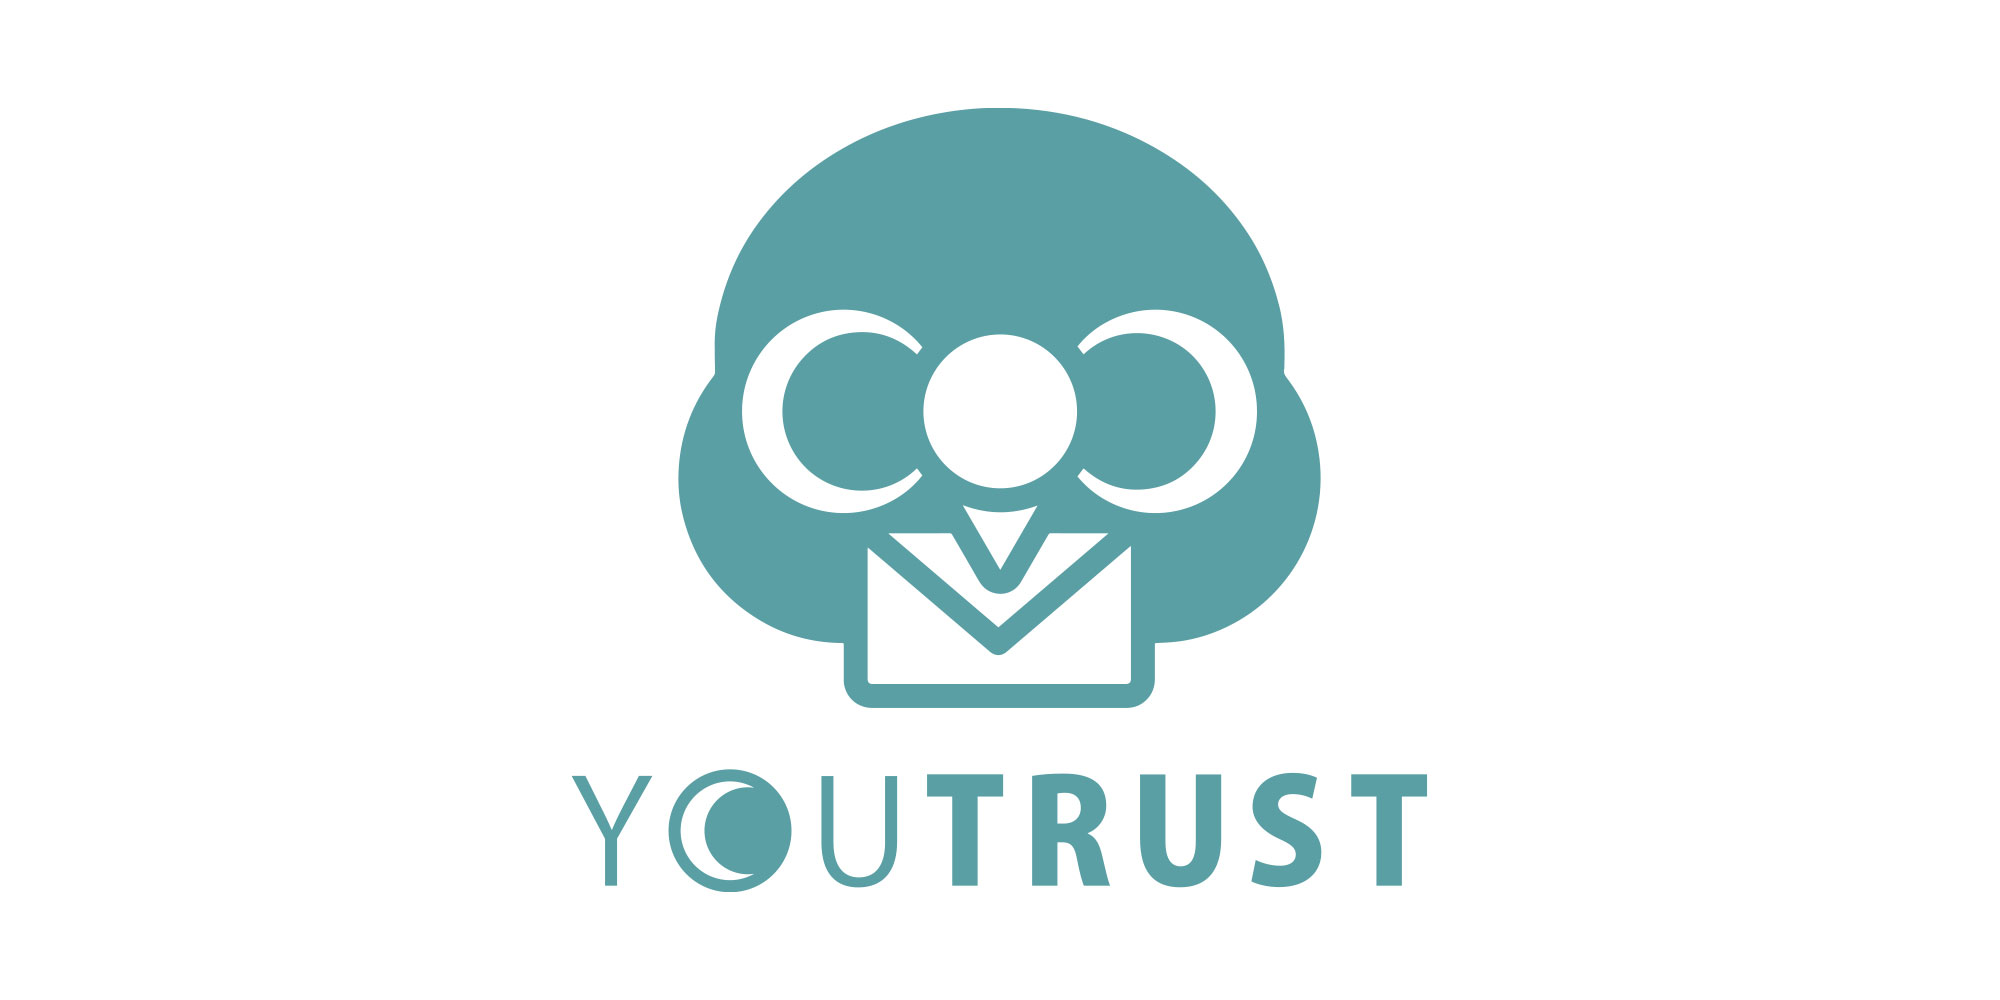 youtrust_logo_type2